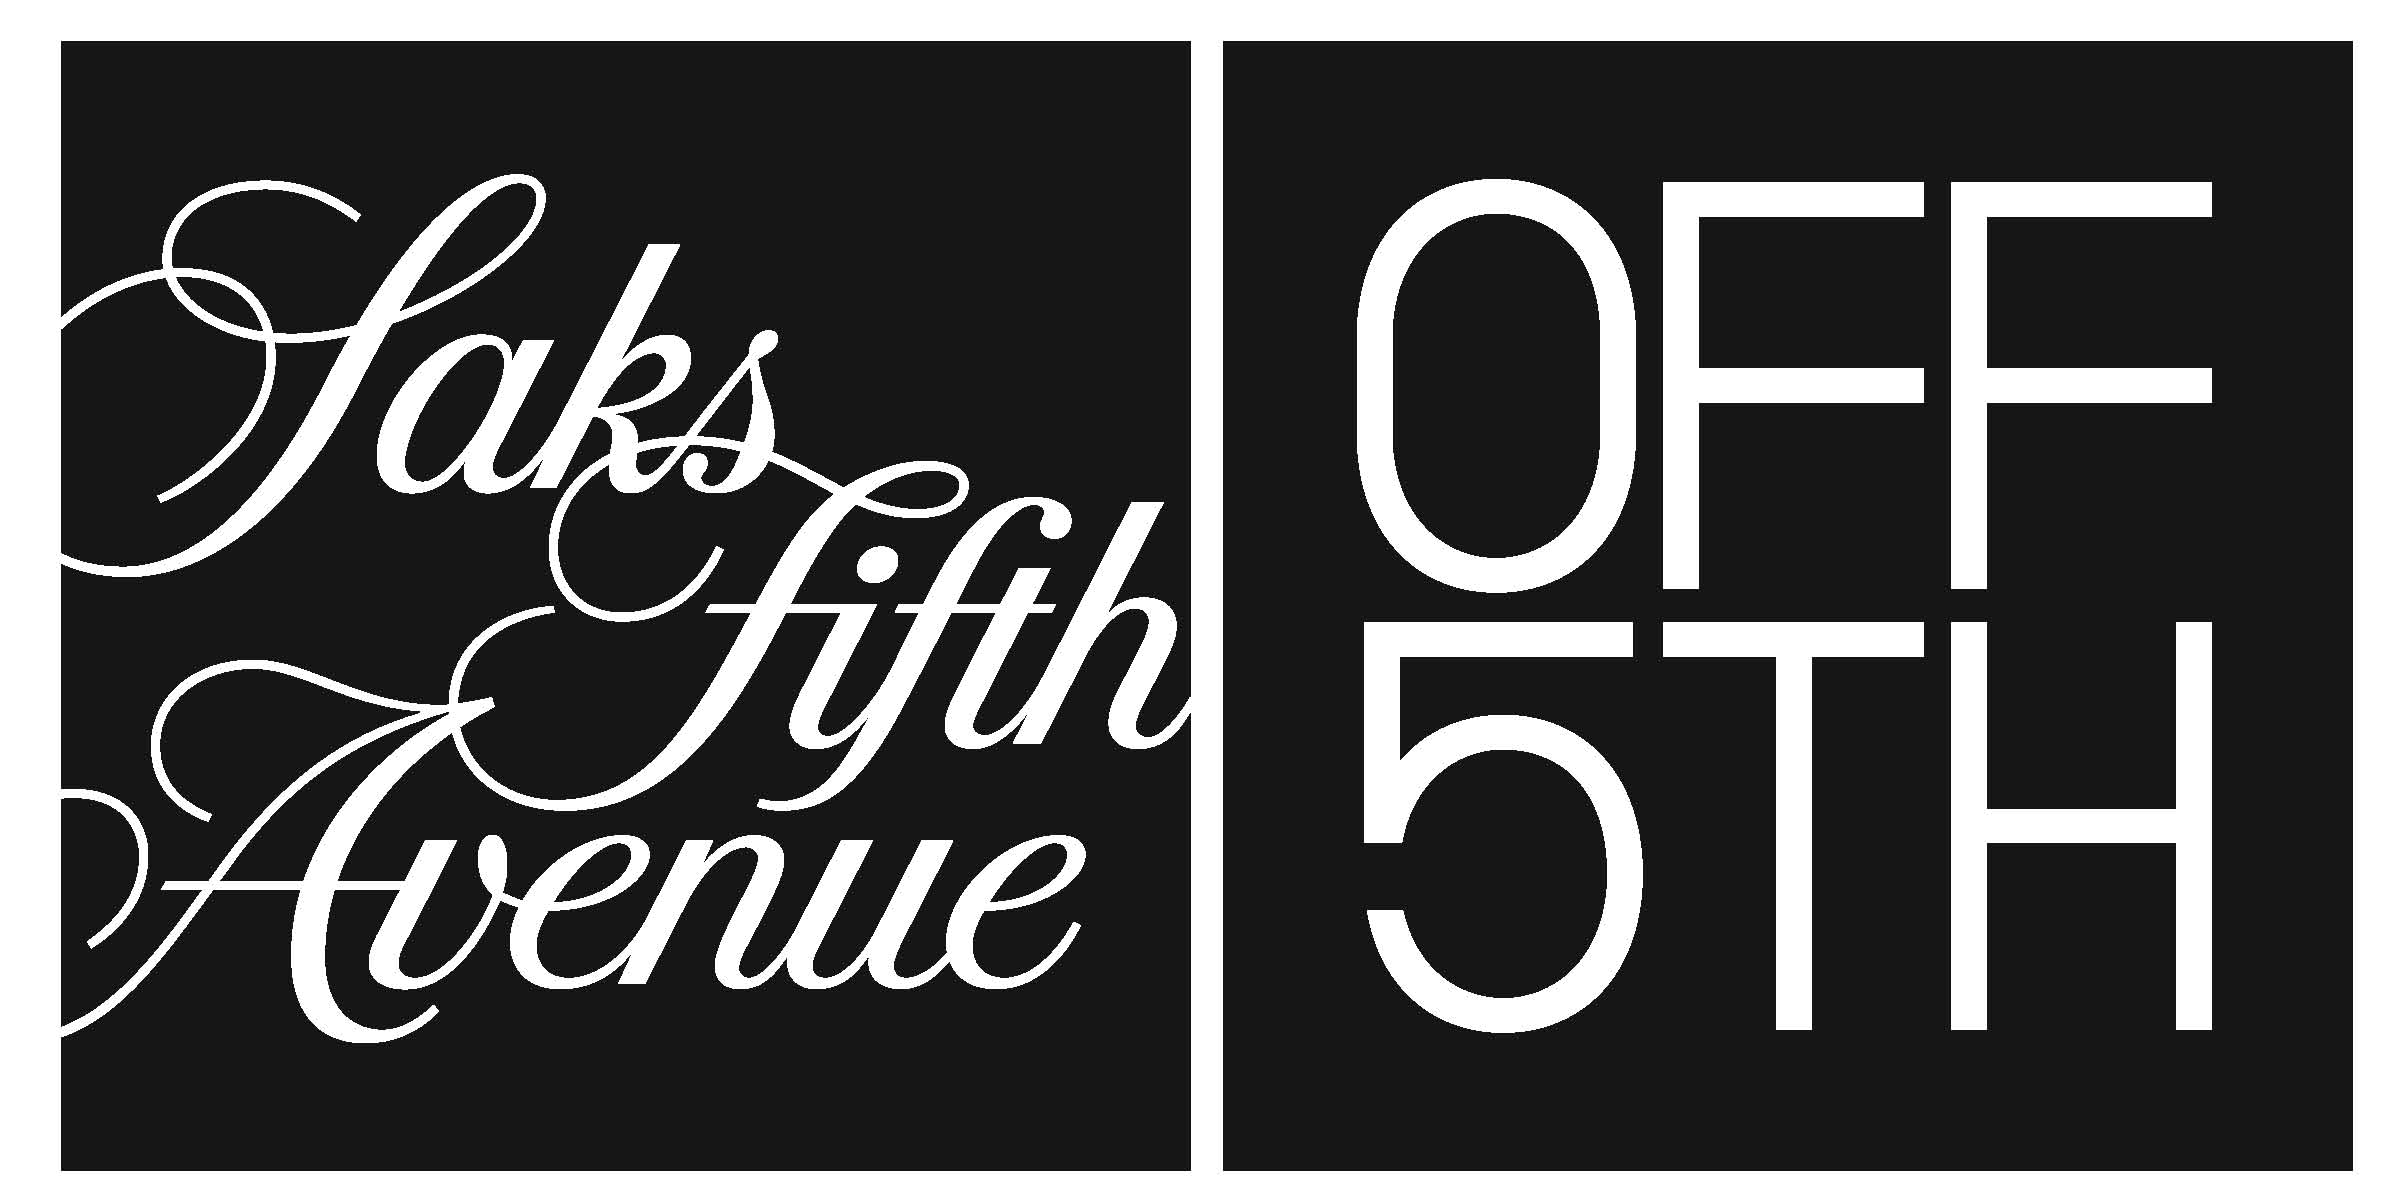 Find the best Saks Fifth Avenue coupons, promo codes & holiday deals for All codes guaranteed to work. Exclusive offers & bonuses up to % back!